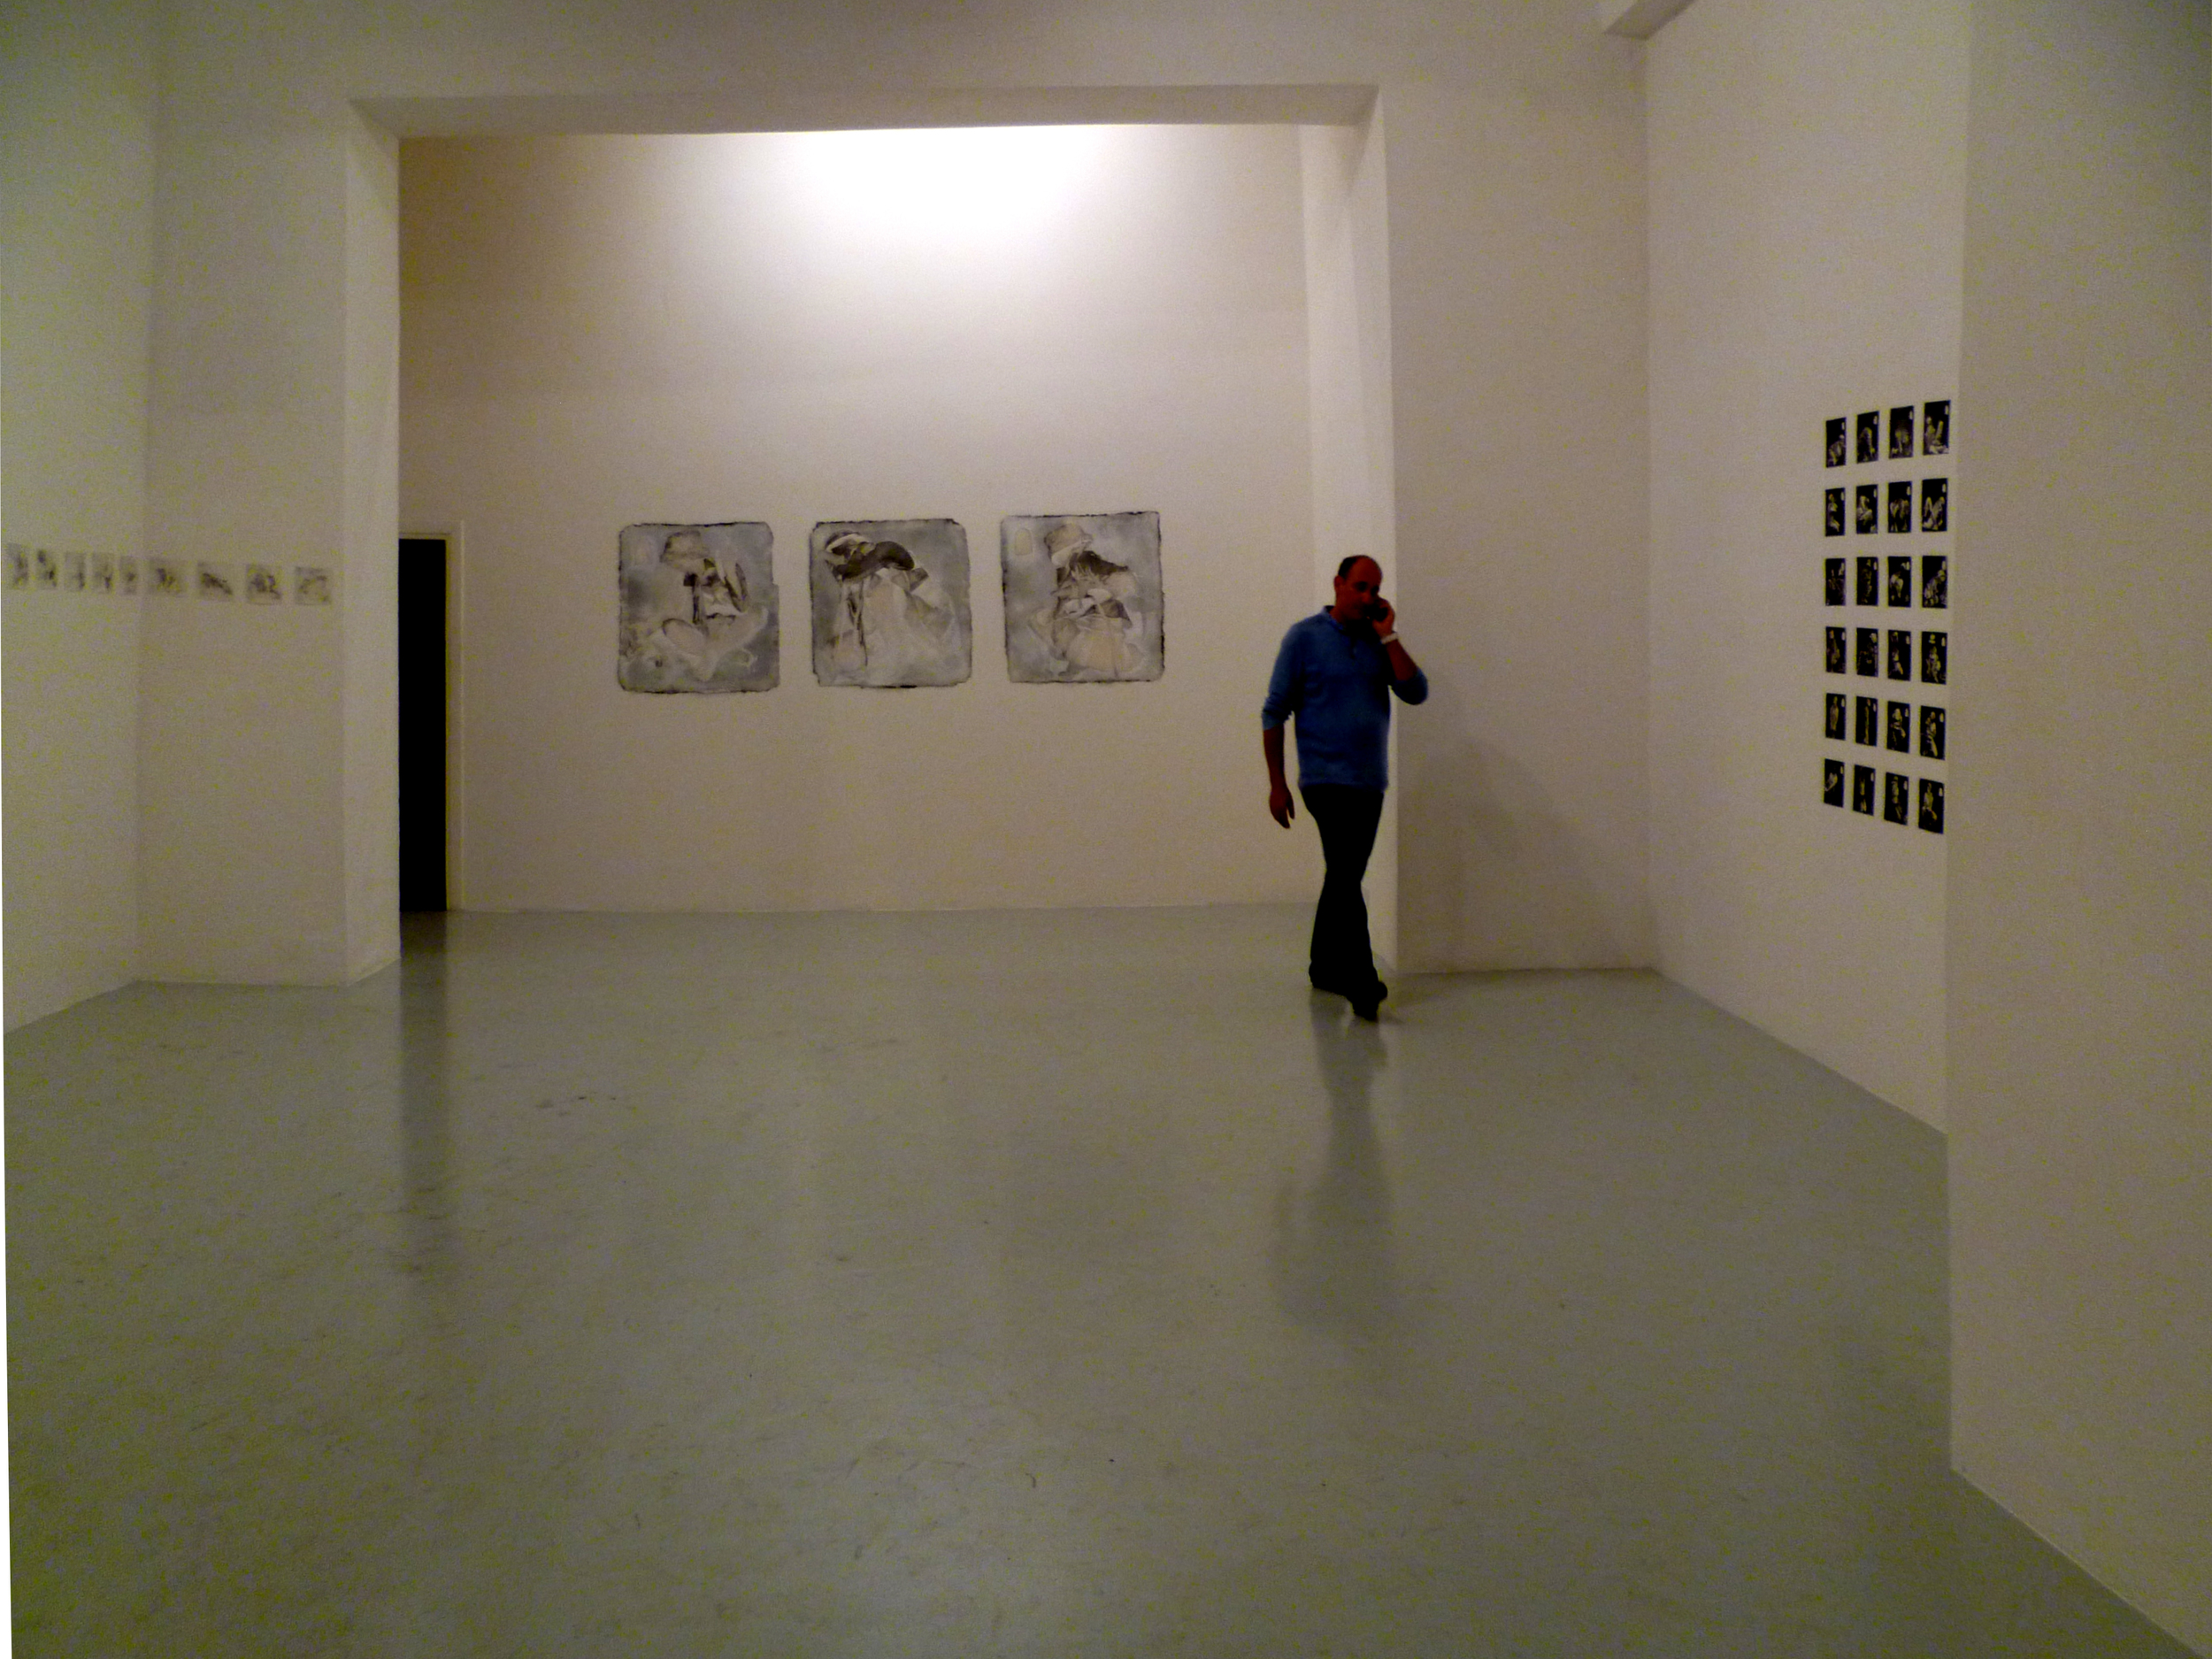 This project is composed of 58 wax narrative drawings of 15x15 cm each,  36 monotypes of 15x15 cm,  36 ink sketches of 15x15 cm,  3 big drawings of 80x80 cm.  Every work is realized on japanese paper, enforced with rice glue and wax